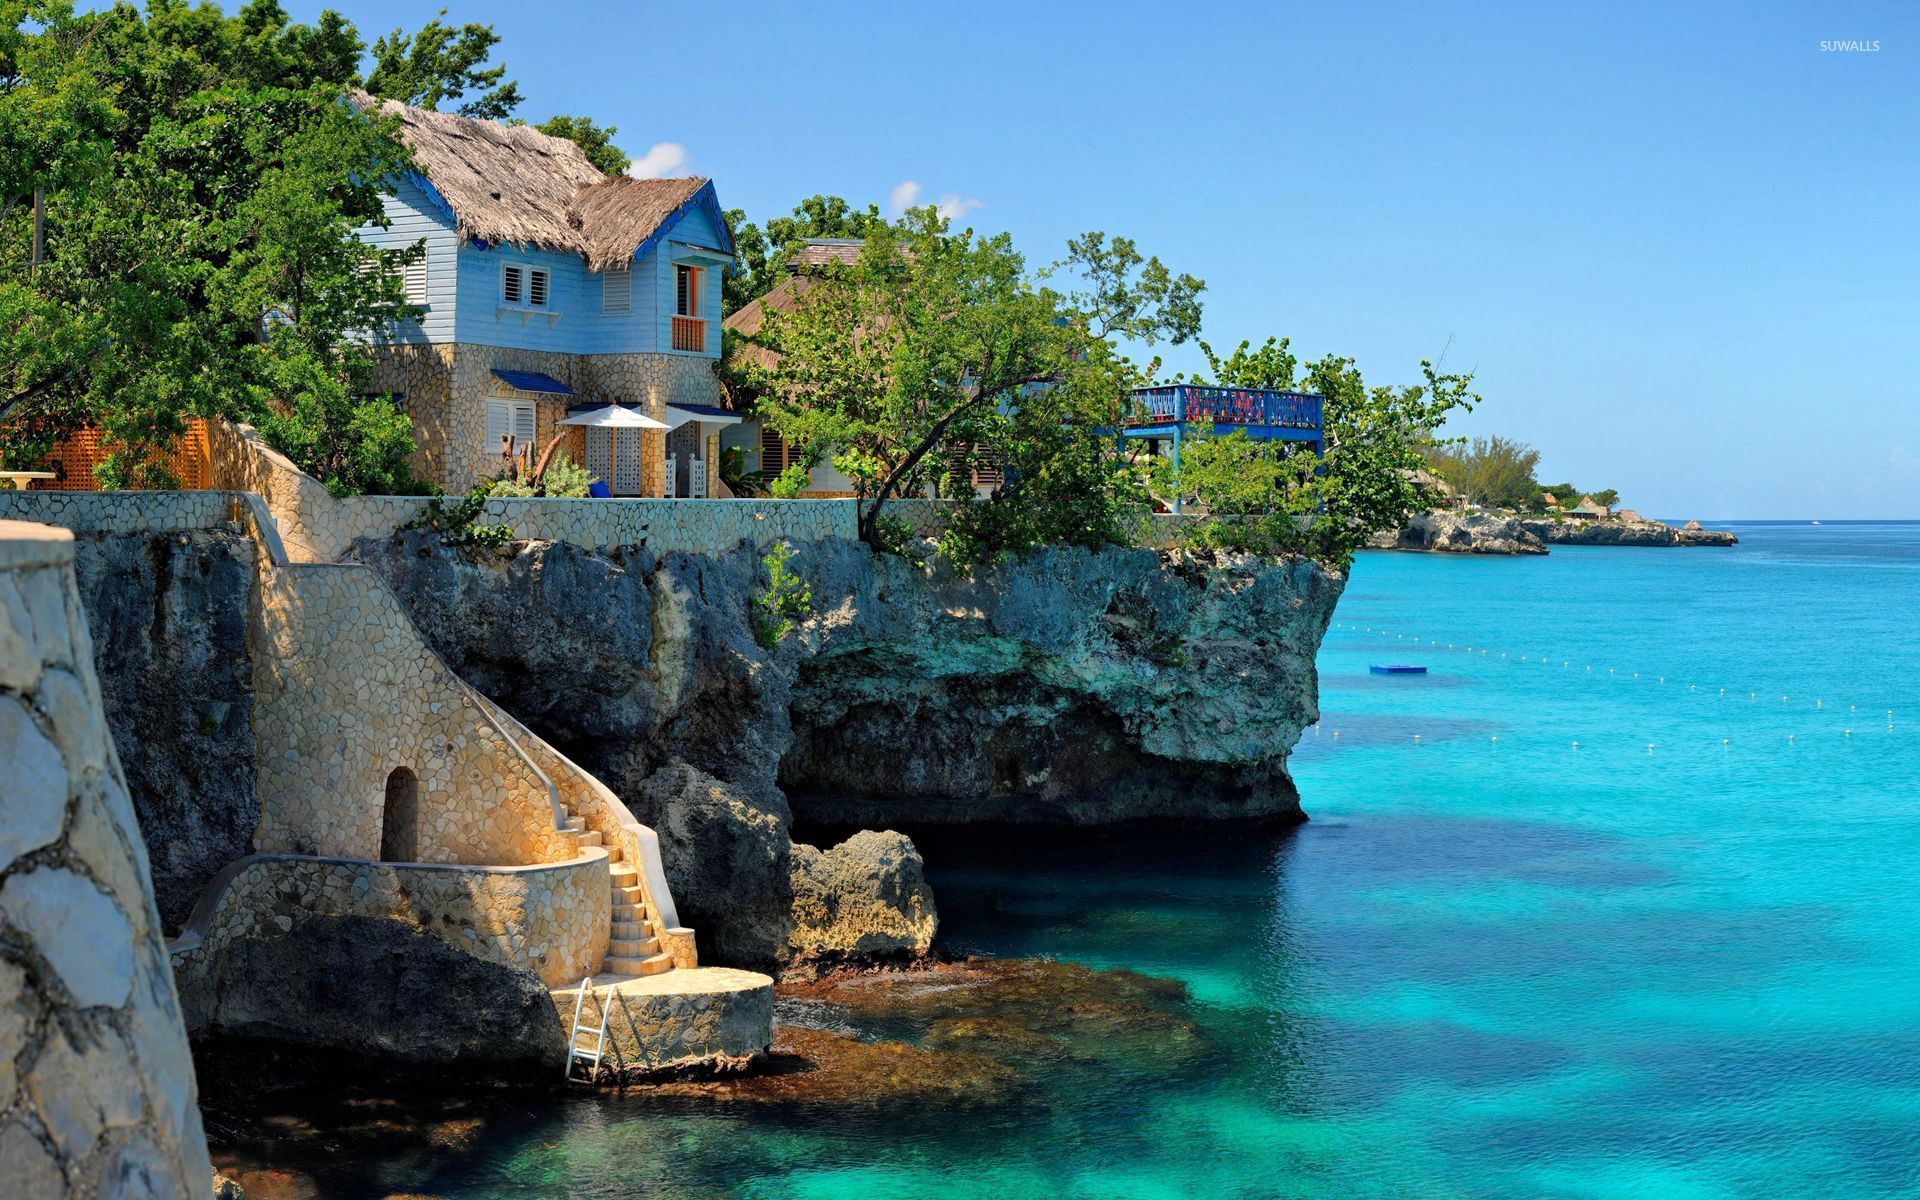 coastal house in negril jamaica wallpaper beach wallpapers 26264